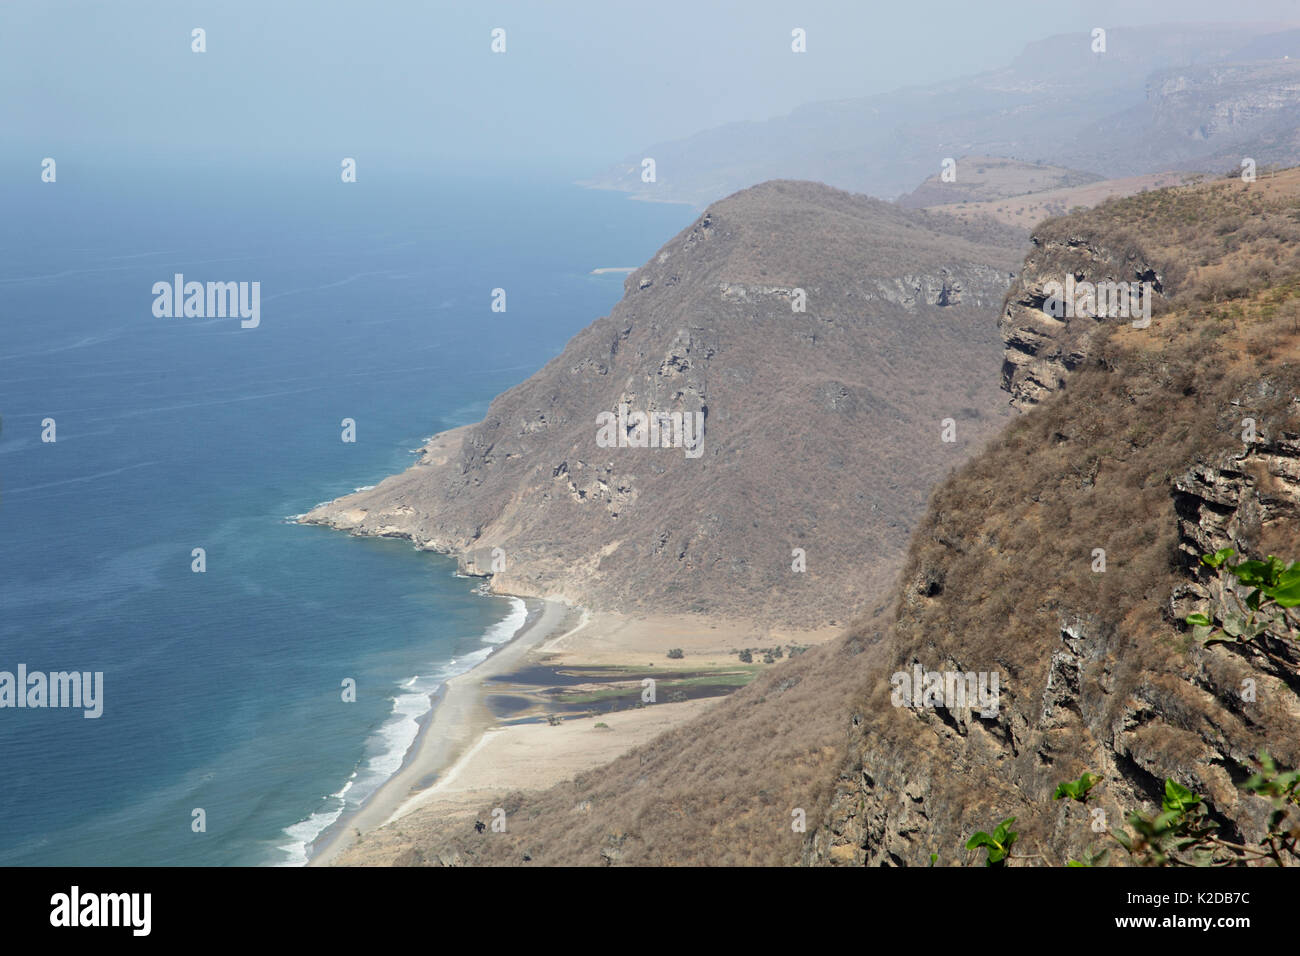 Khawr Kharfot, a remote lagoon that can only be reached on foot, Oman, May - Stock Image